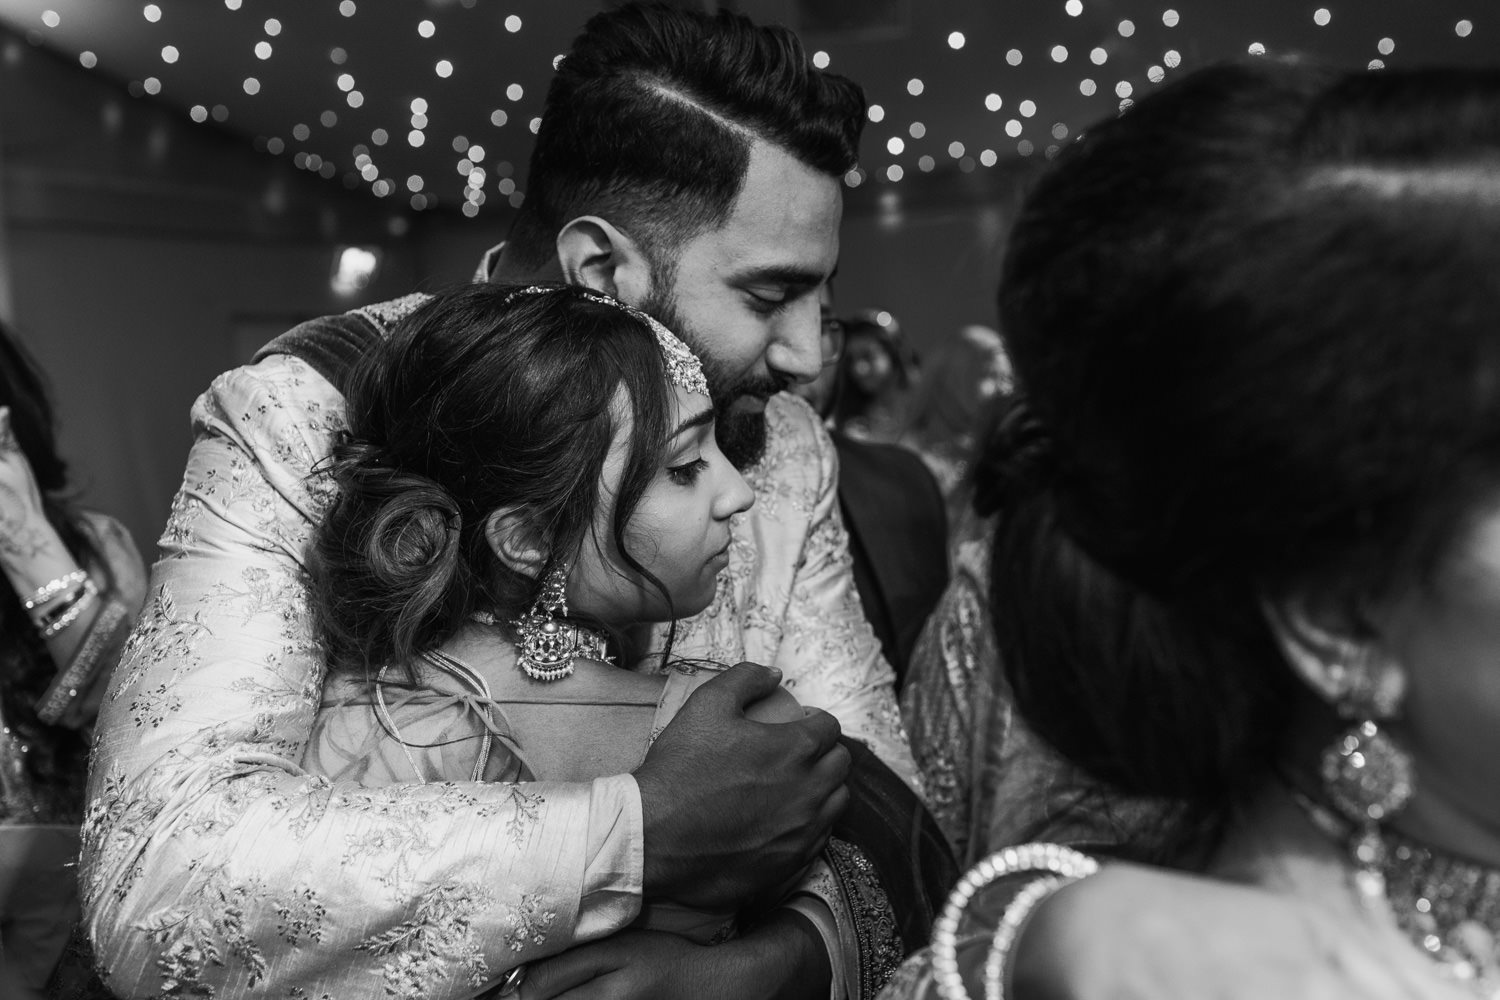 candind and documentary Asian Wedding photography London